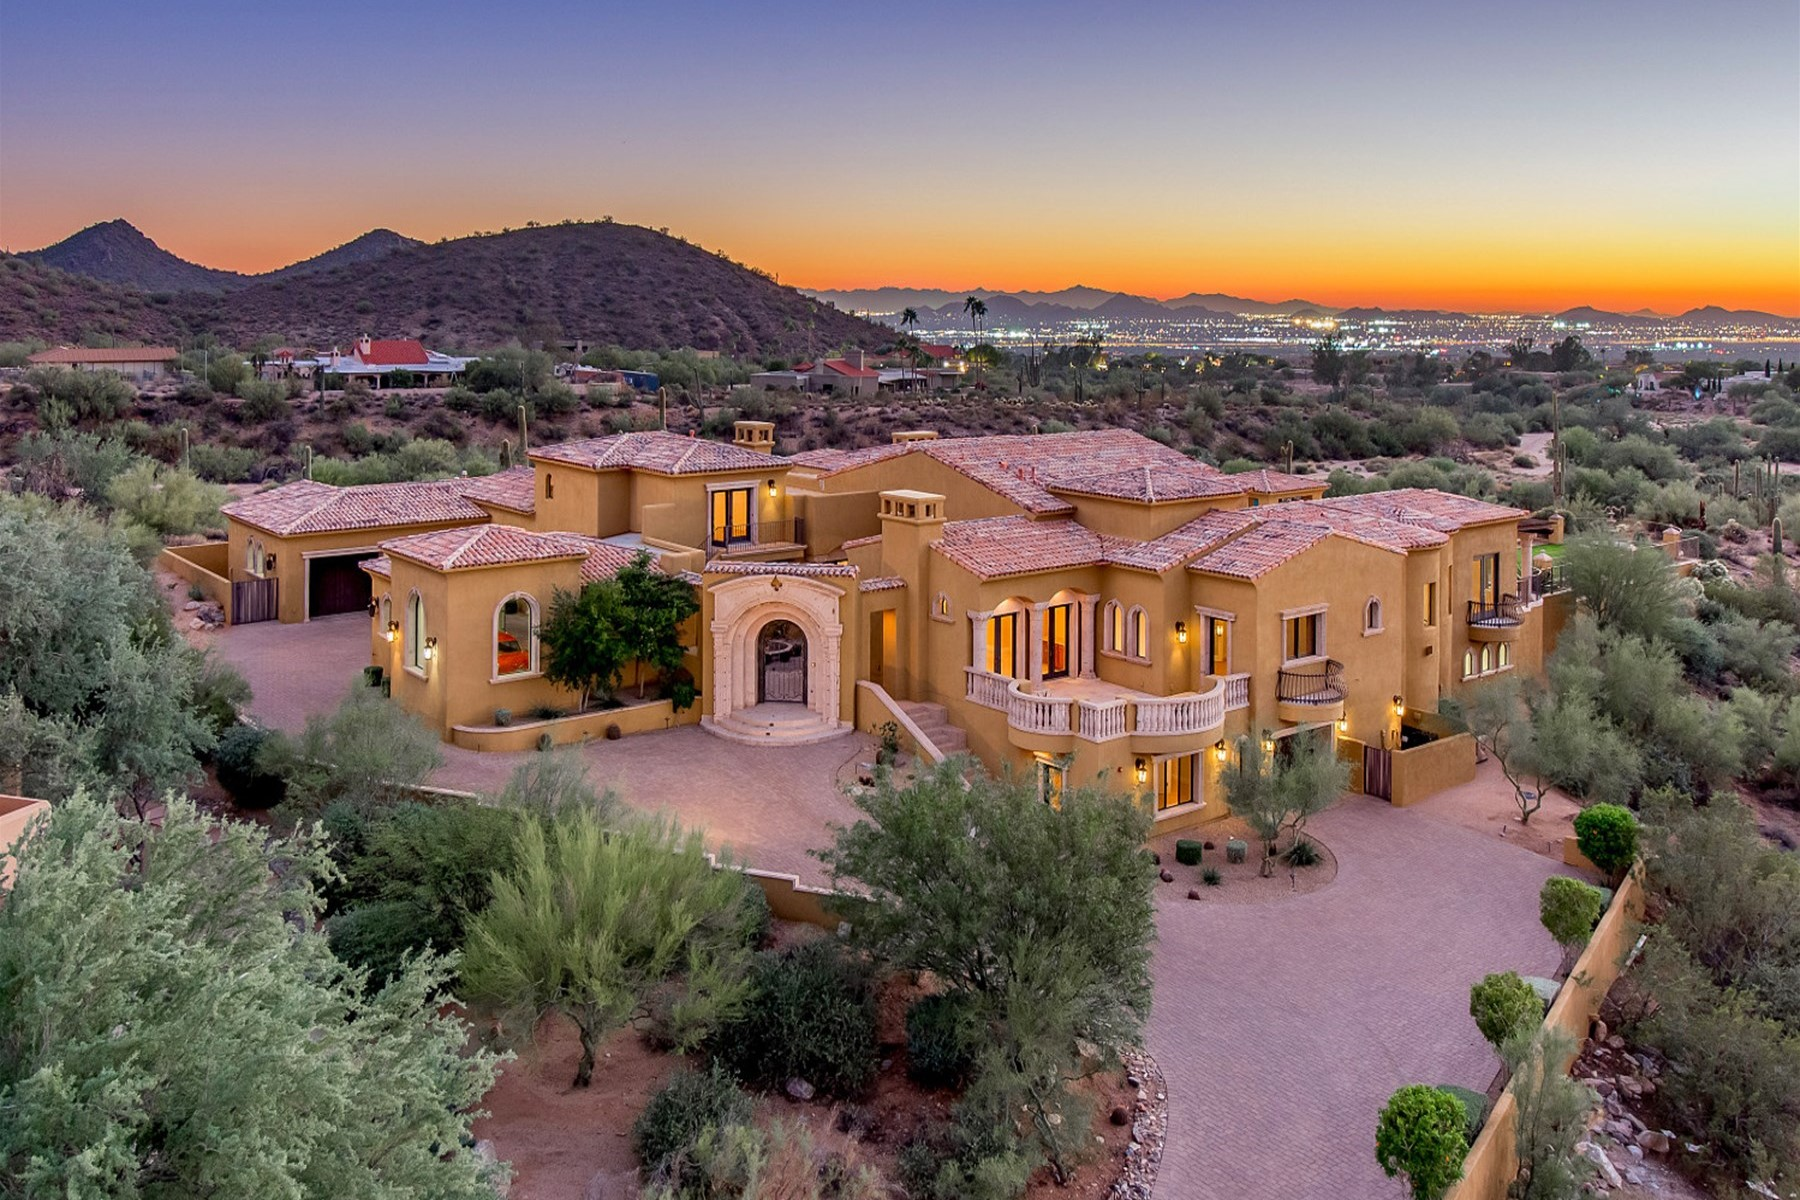 Single Family Home for Sale at Soft Mediterranean estate in Sonoran Highlands 24200 N Alma School Rd #53 Scottsdale, Arizona, 85255 United States